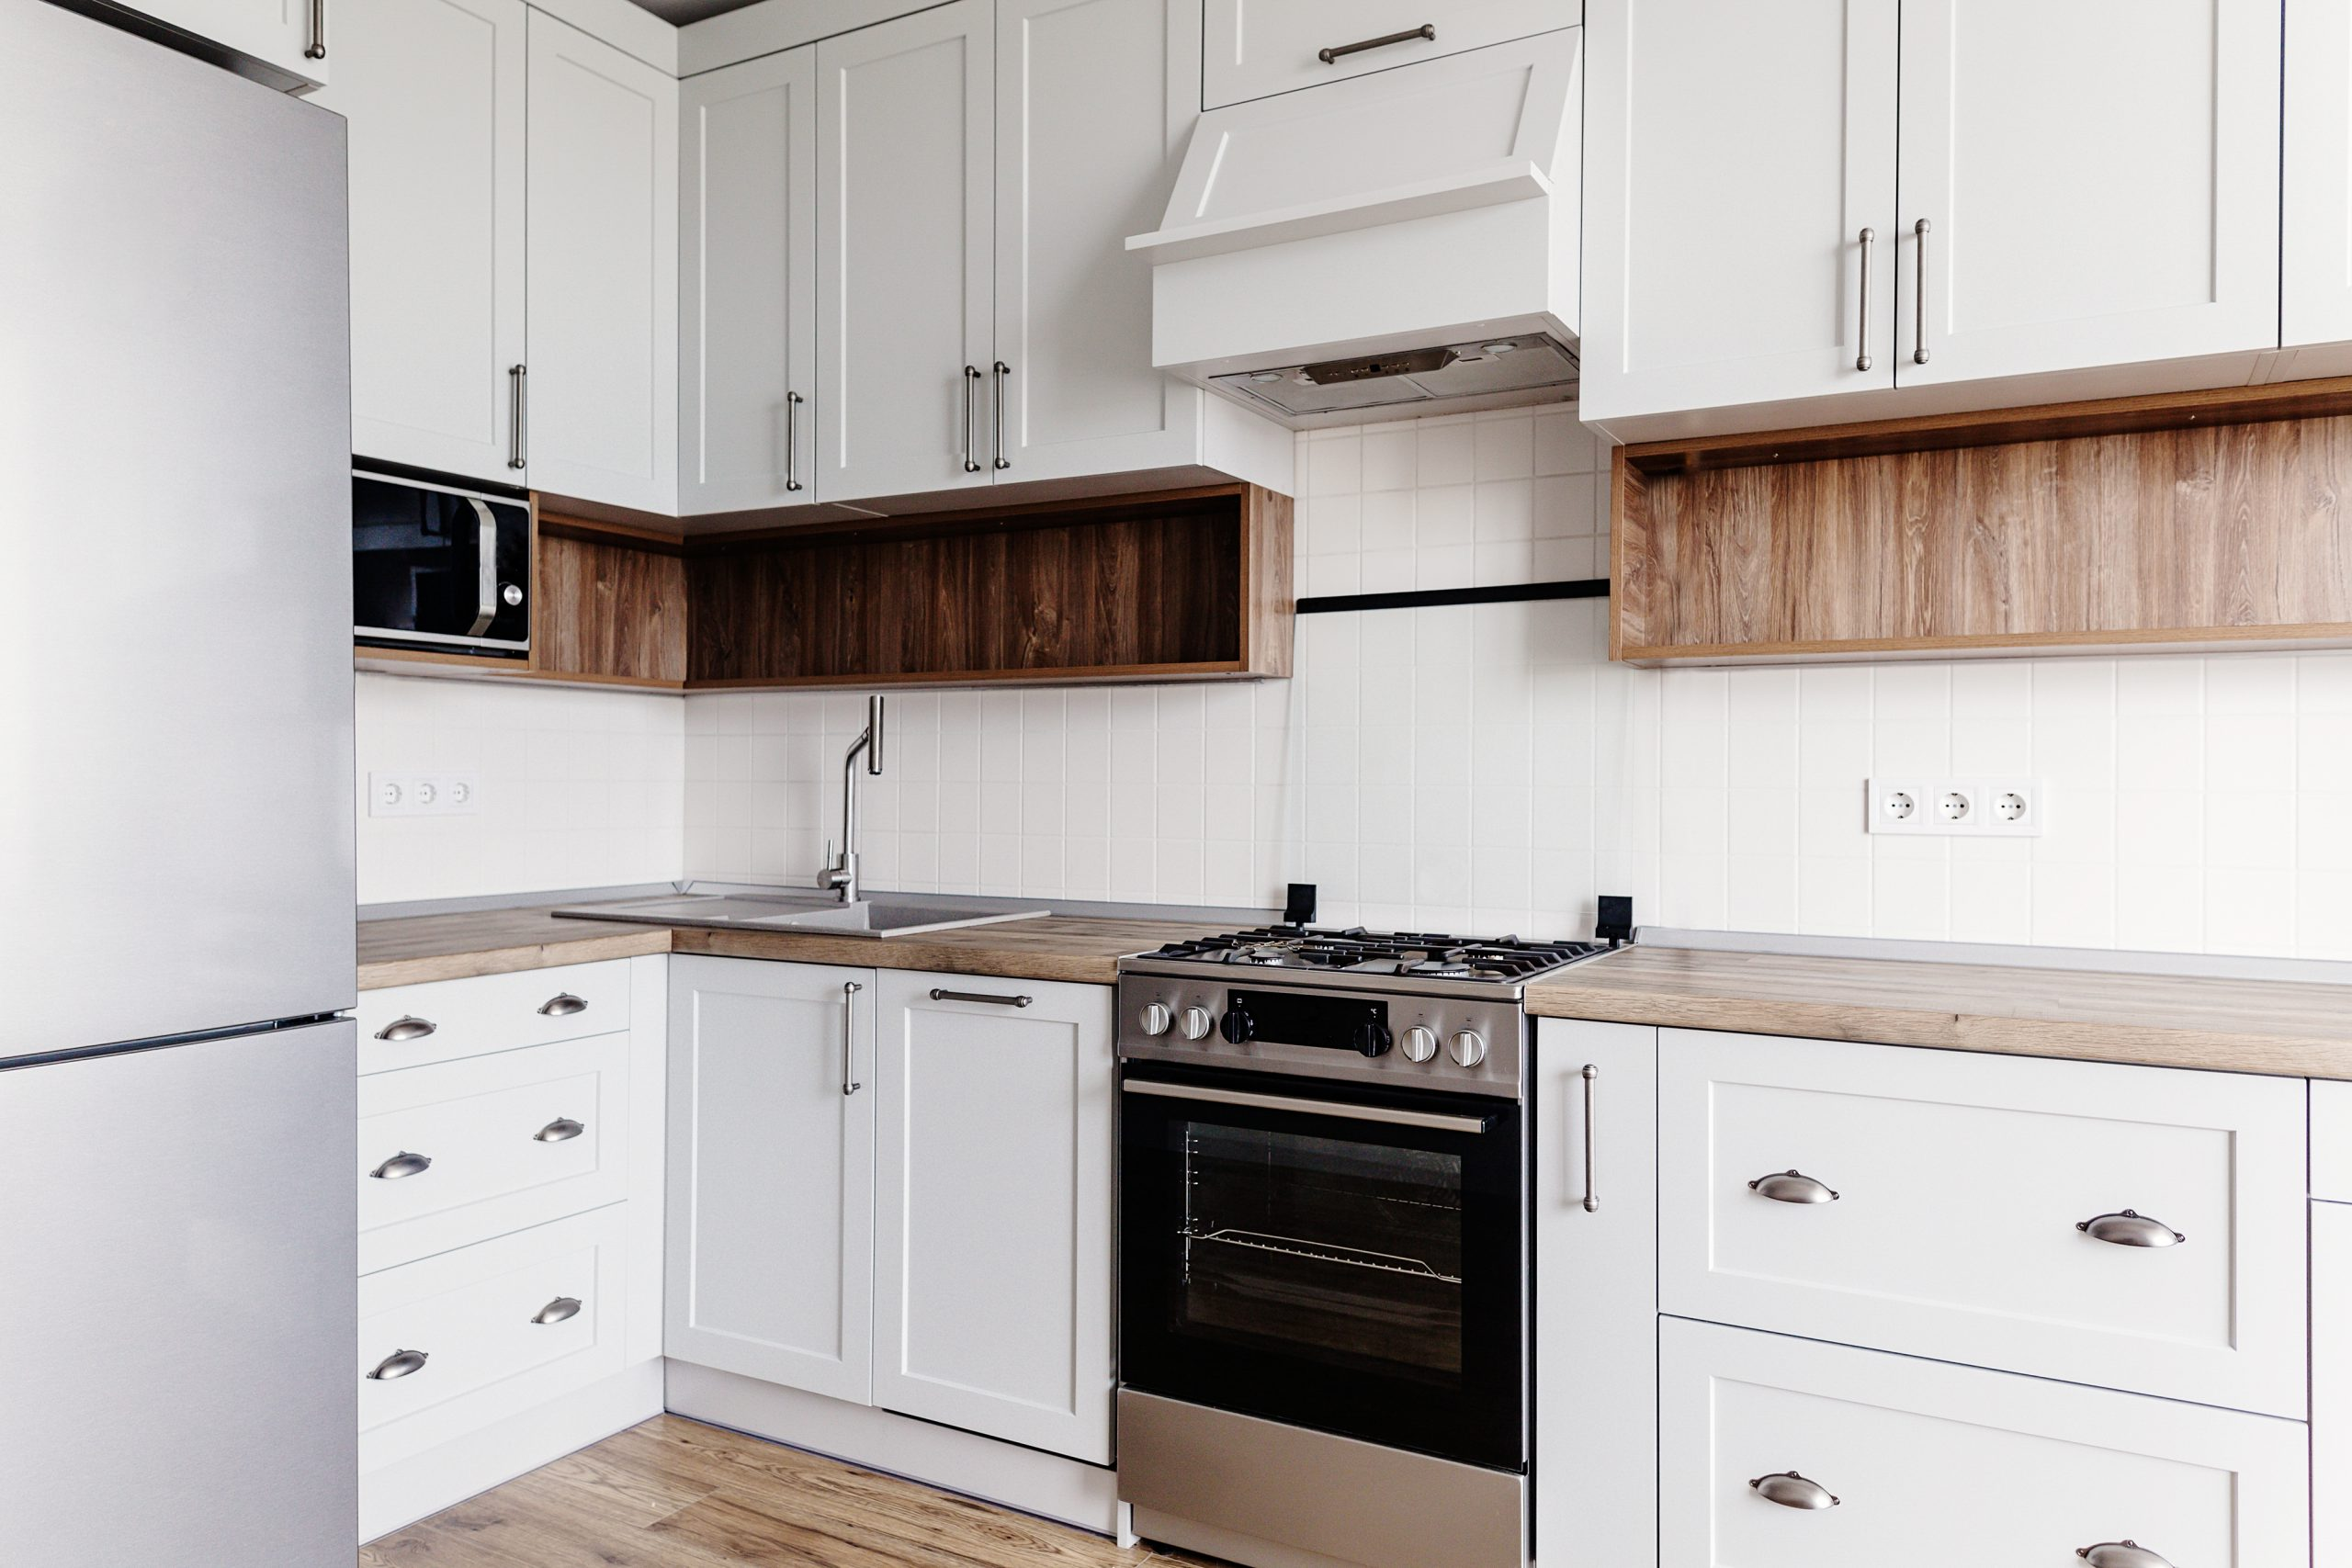 Light colours help when learning How to add style to your kitchen